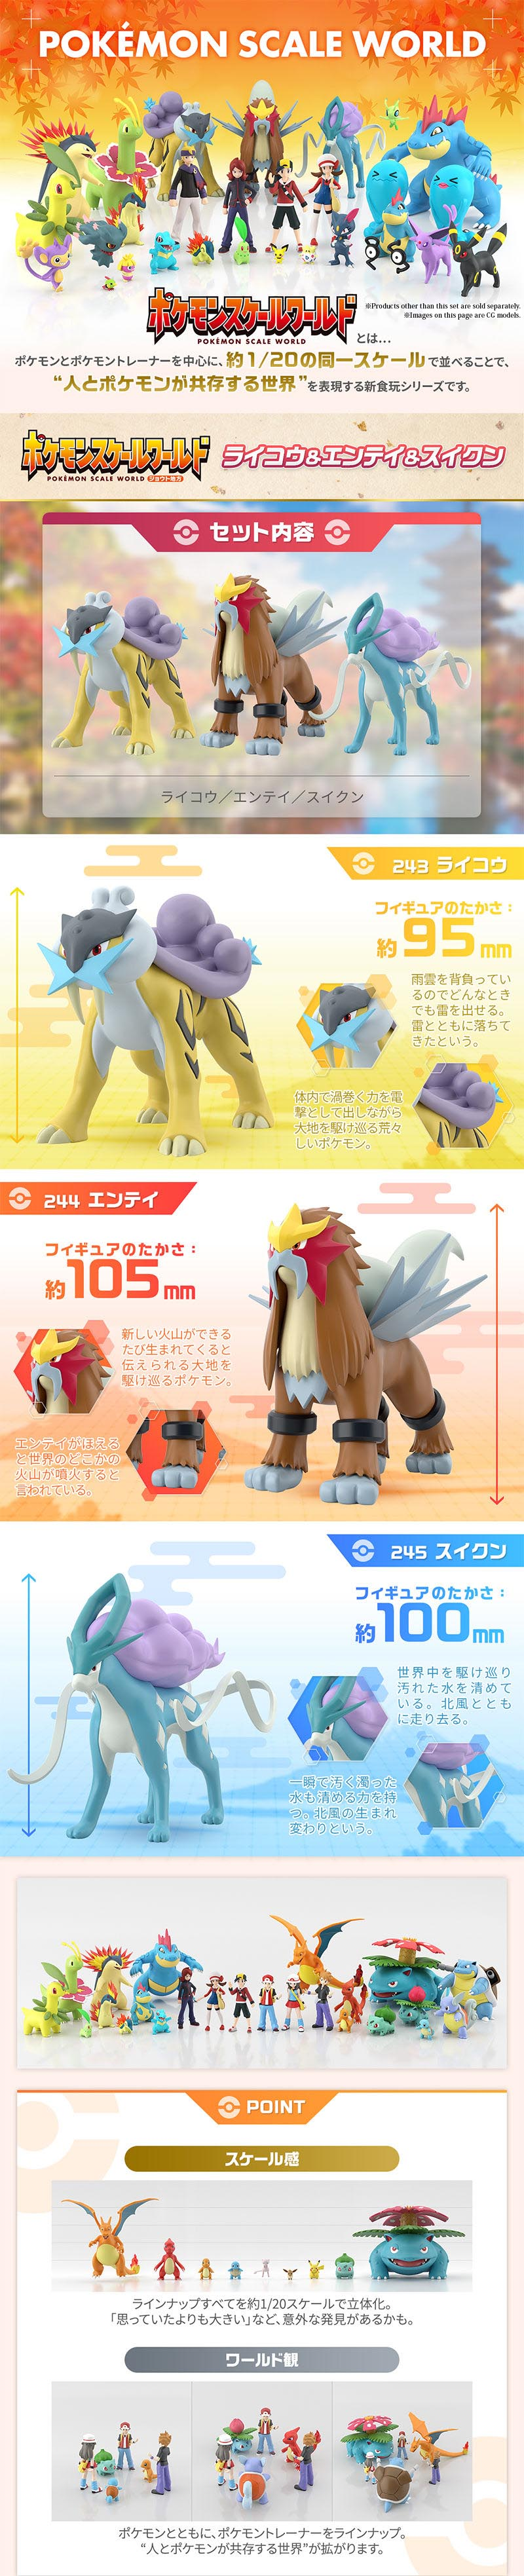 POKEMON SCALE WORLD JOUTO Raikou & Entei & Suicune